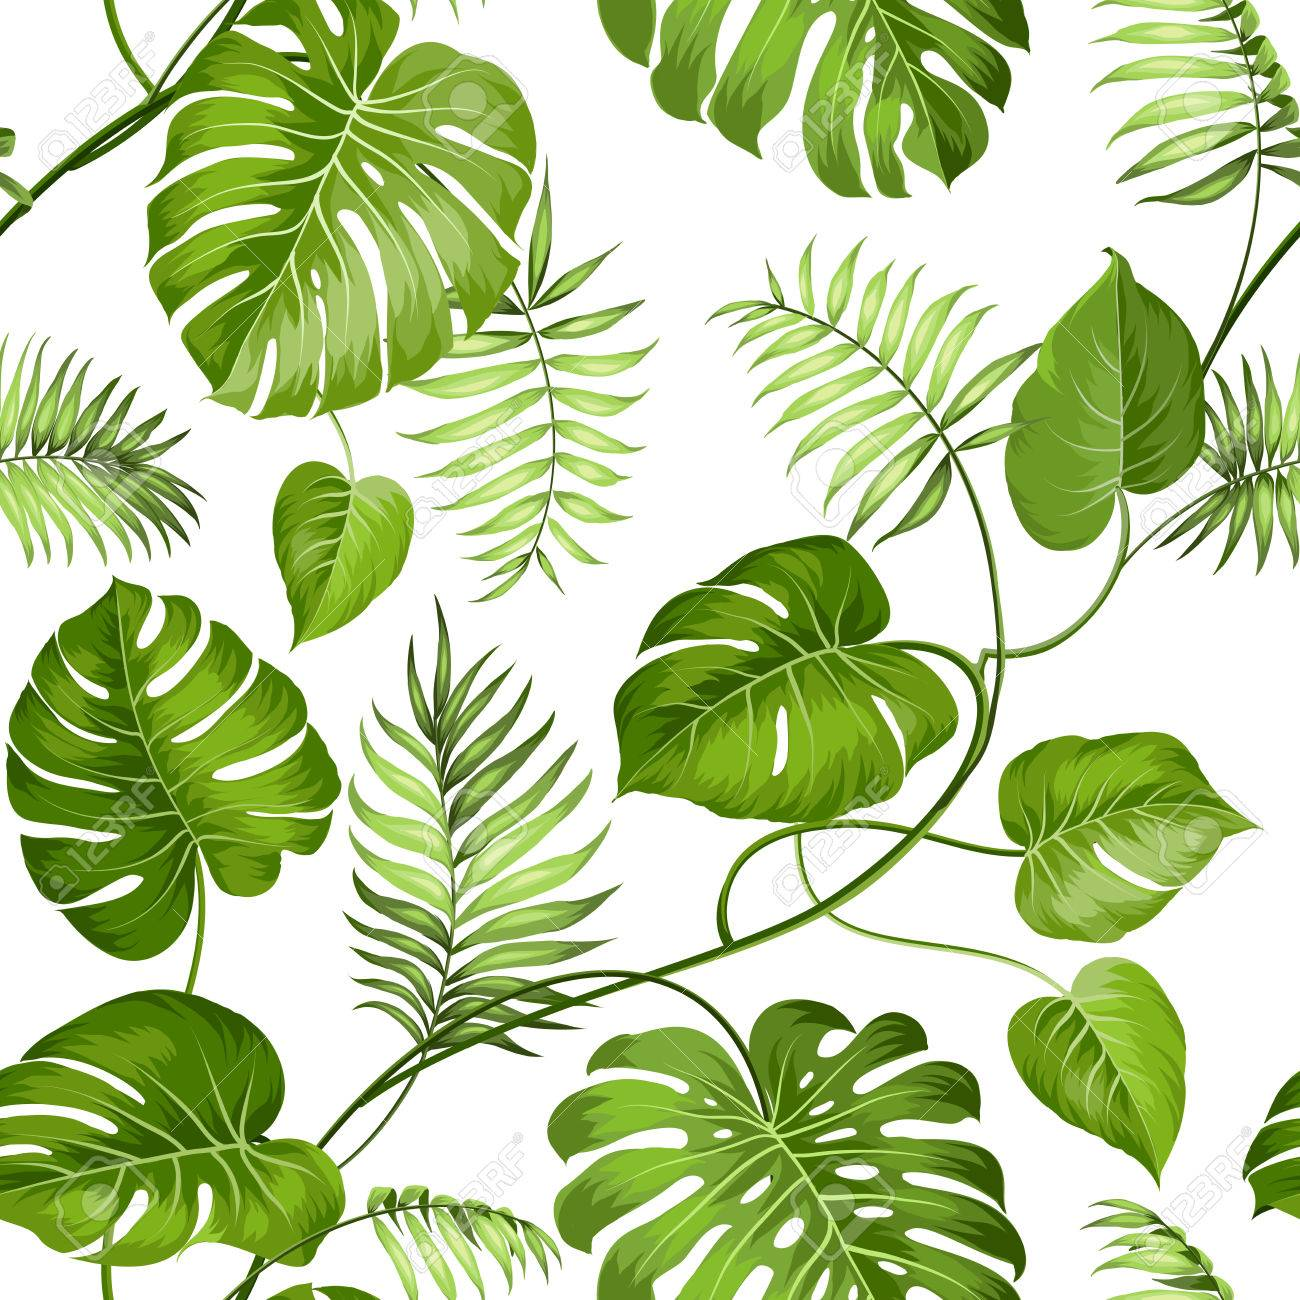 Tropical Leaves Design For Fabric Swatch Vector Illustration Royalty Free Cliparts Vectors And Stock Illustration Image 40798596 .jungle leaves, tropical leaves pattern, palm tree, tropical forest tropical leaves design, free vector about (4,827 files) free vector in ai, eps, cdr, svg vector illustration graphic art design format. tropical leaves design for fabric swatch vector illustration